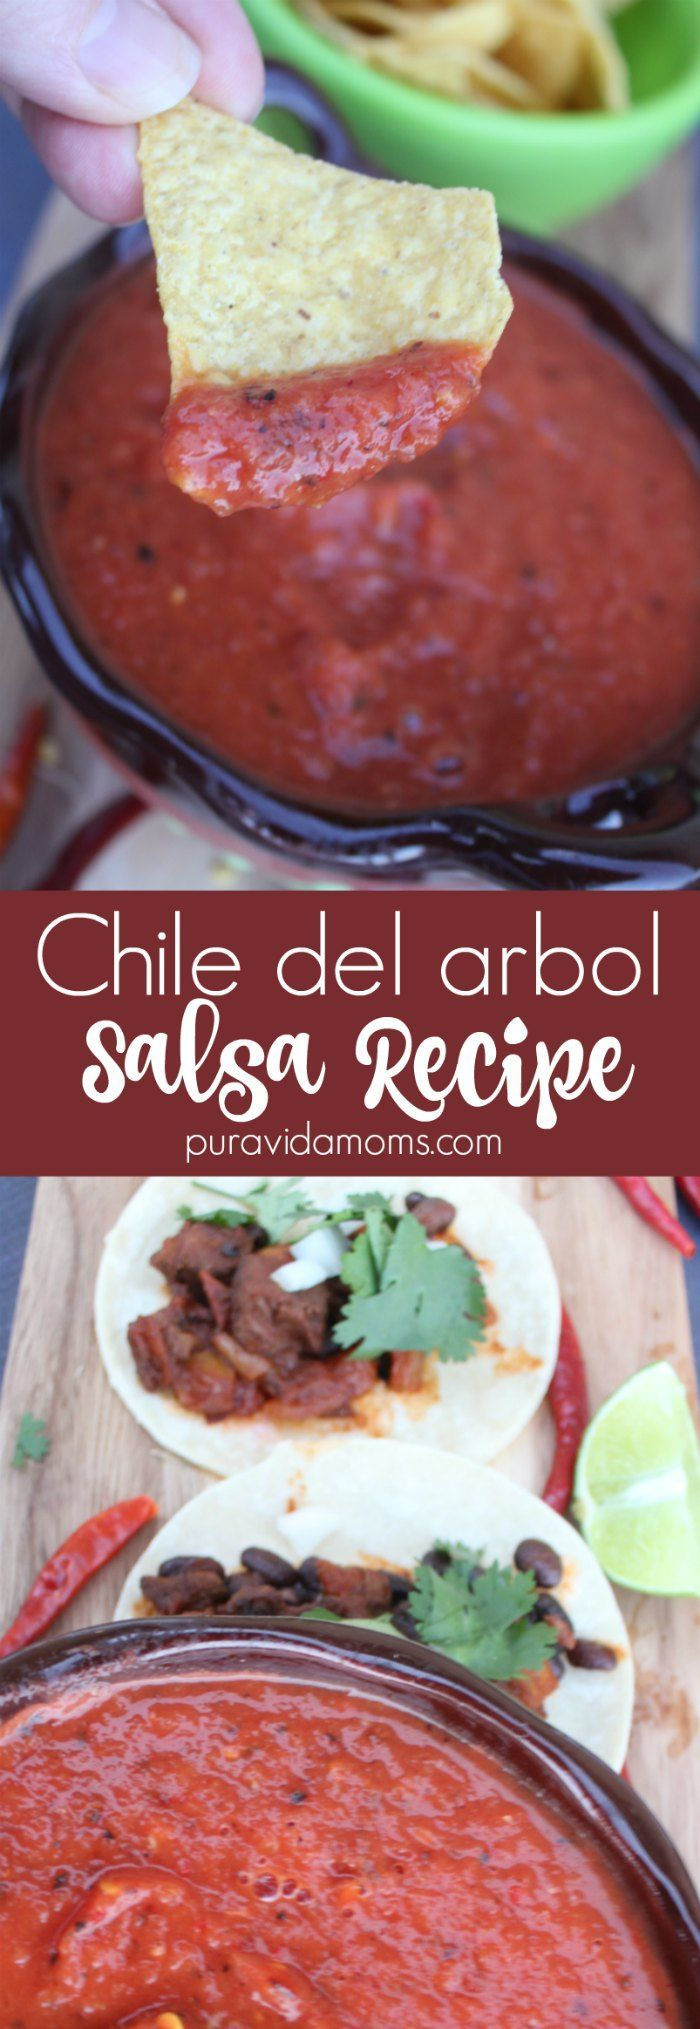 This simple chile del arbol salsa recipe is the perfect with tortilla chips or Mexican tacos. This restaurant quality salsa is ready in 10 minutes. #FronteraExperience #ad